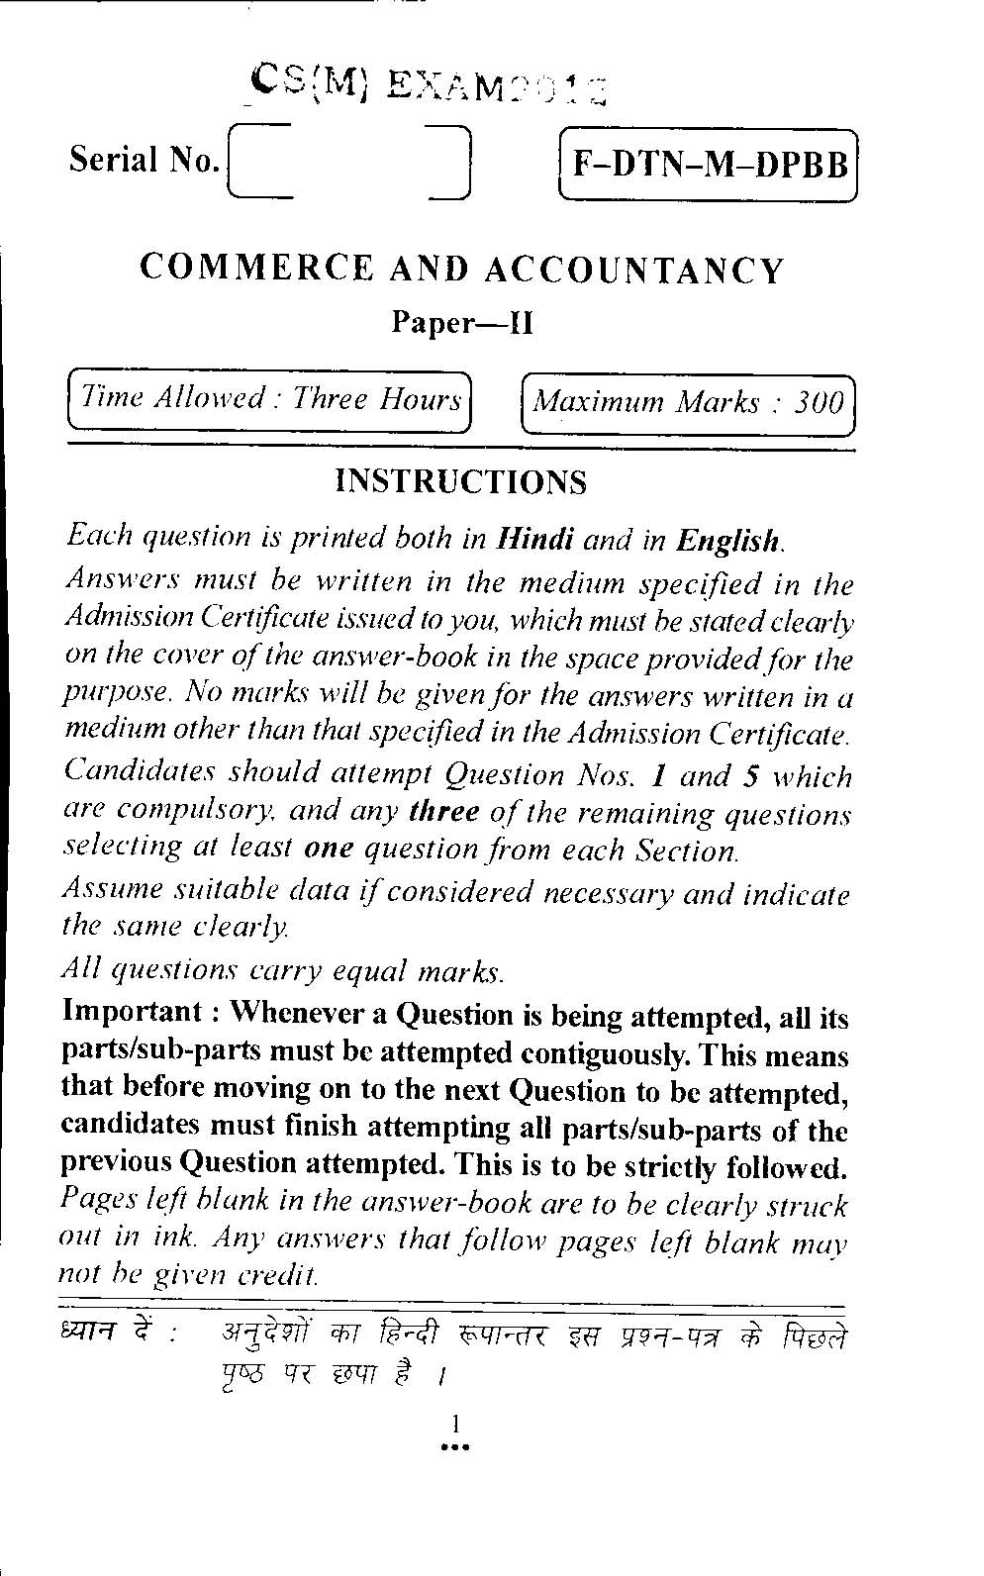 013 Civil Services Examination Commerce And Accountancy Paper Ii Previous Years Que Essay On Racism Exceptional In Hindi Conclusion Othello Full